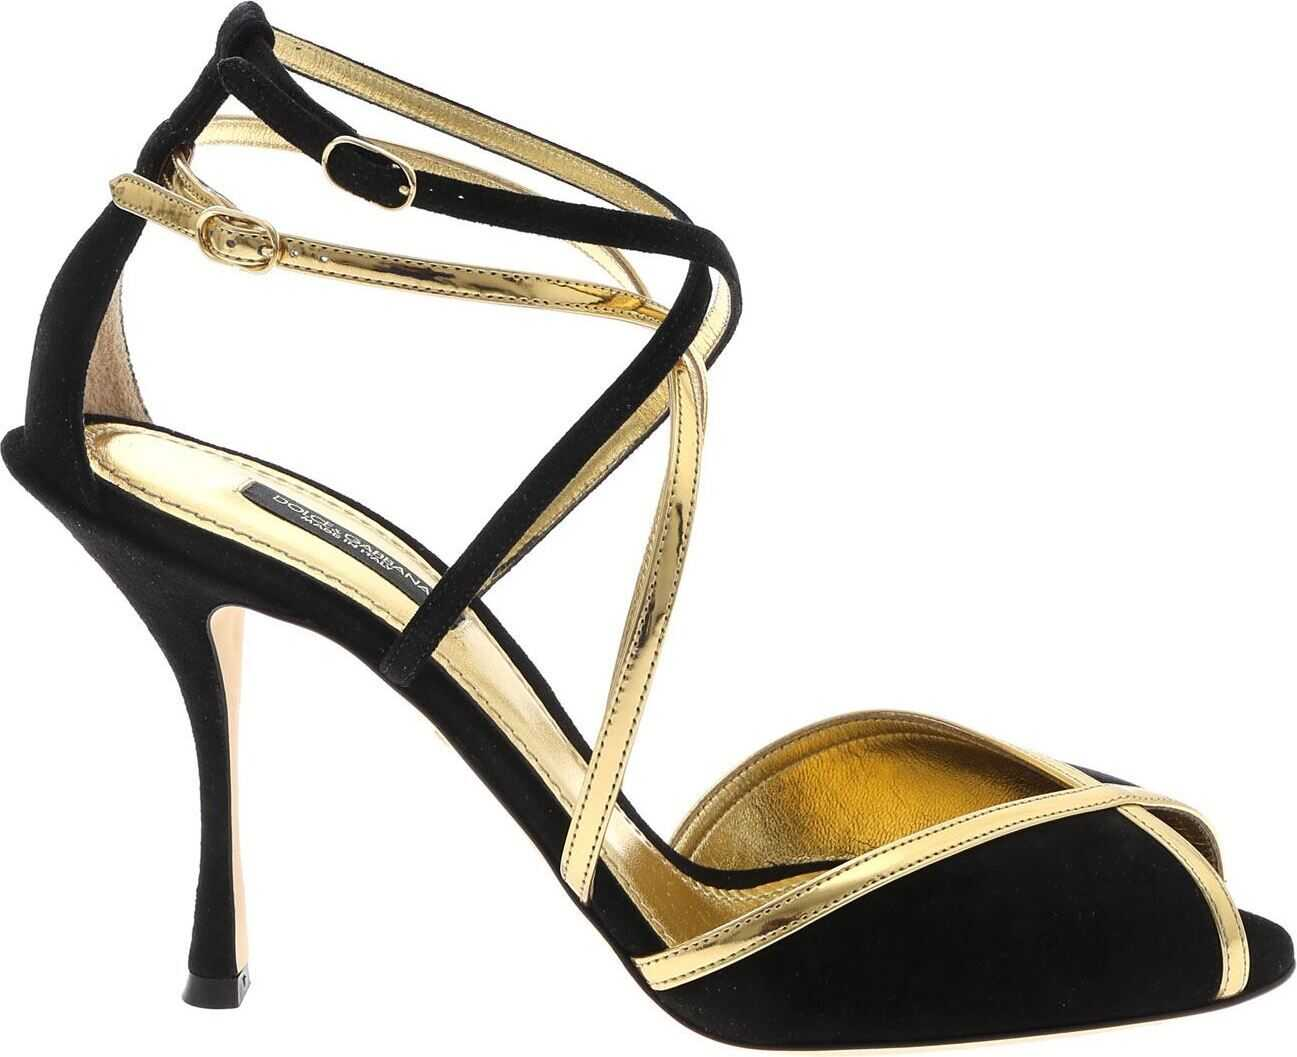 Prada Heeled Sandals In Gold And Black Gold